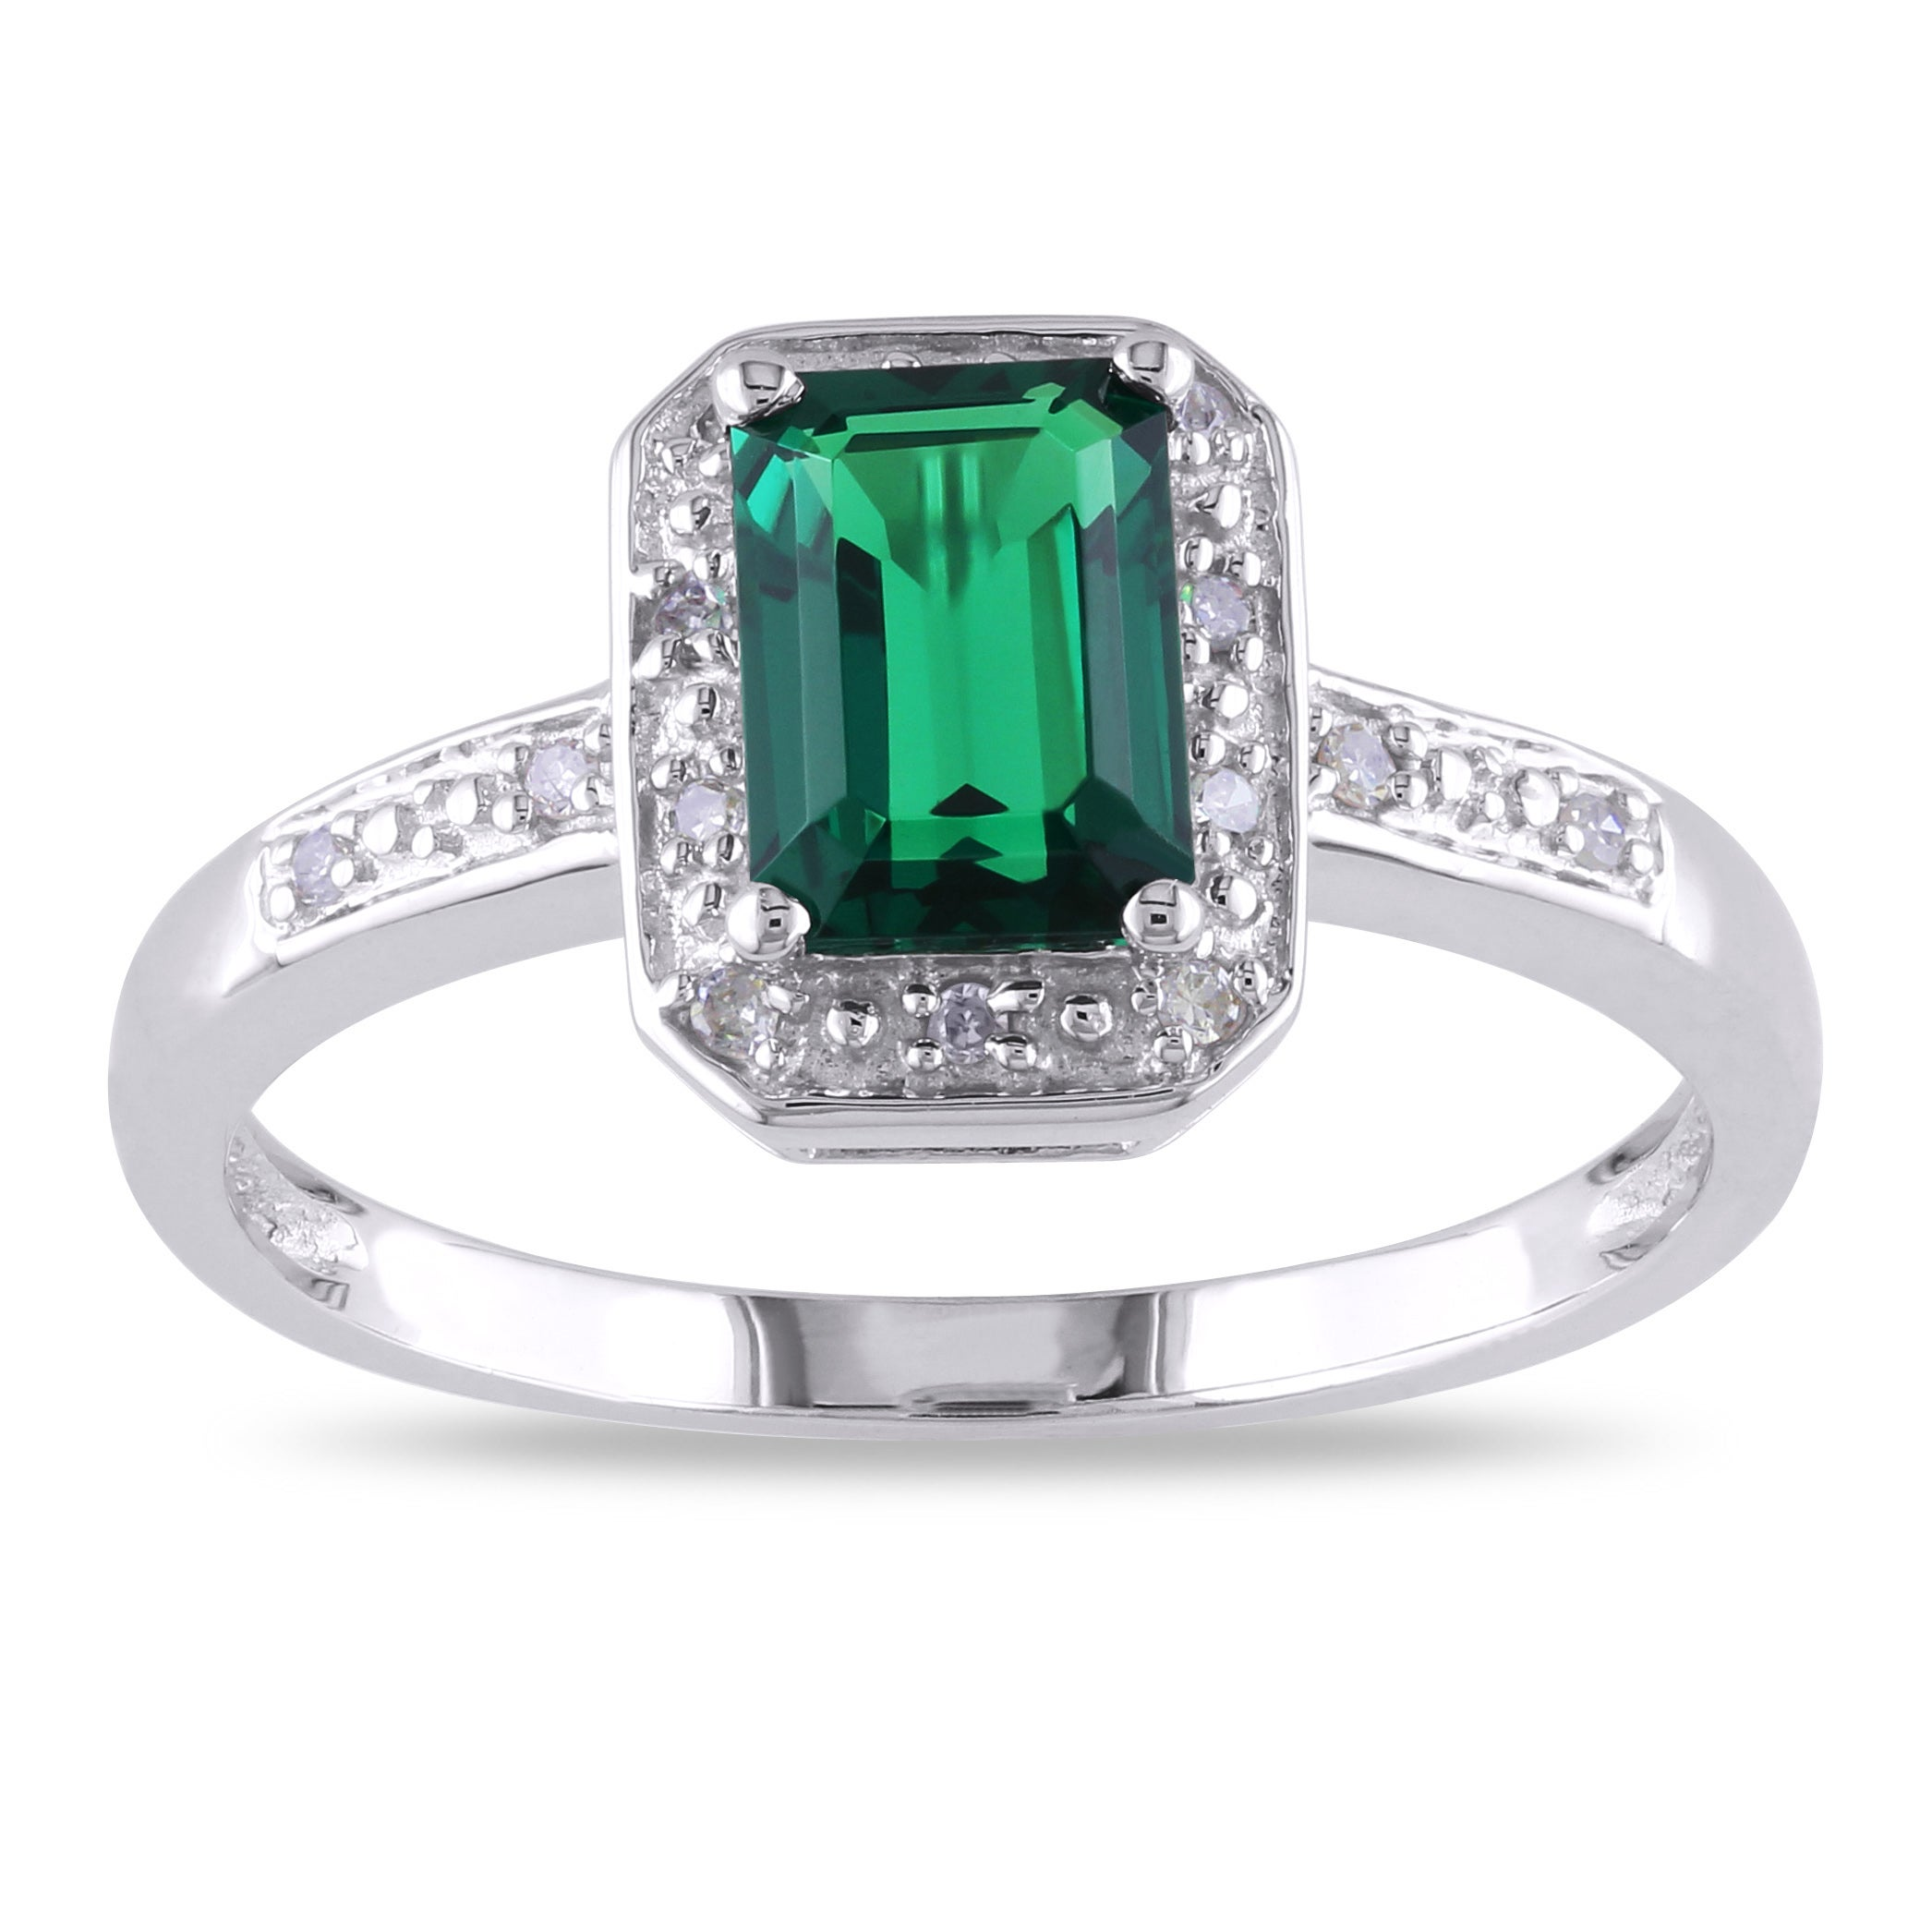 rings comparison how everything you designers about gemologue to emerald buy emeralds know an img need emeral ring price